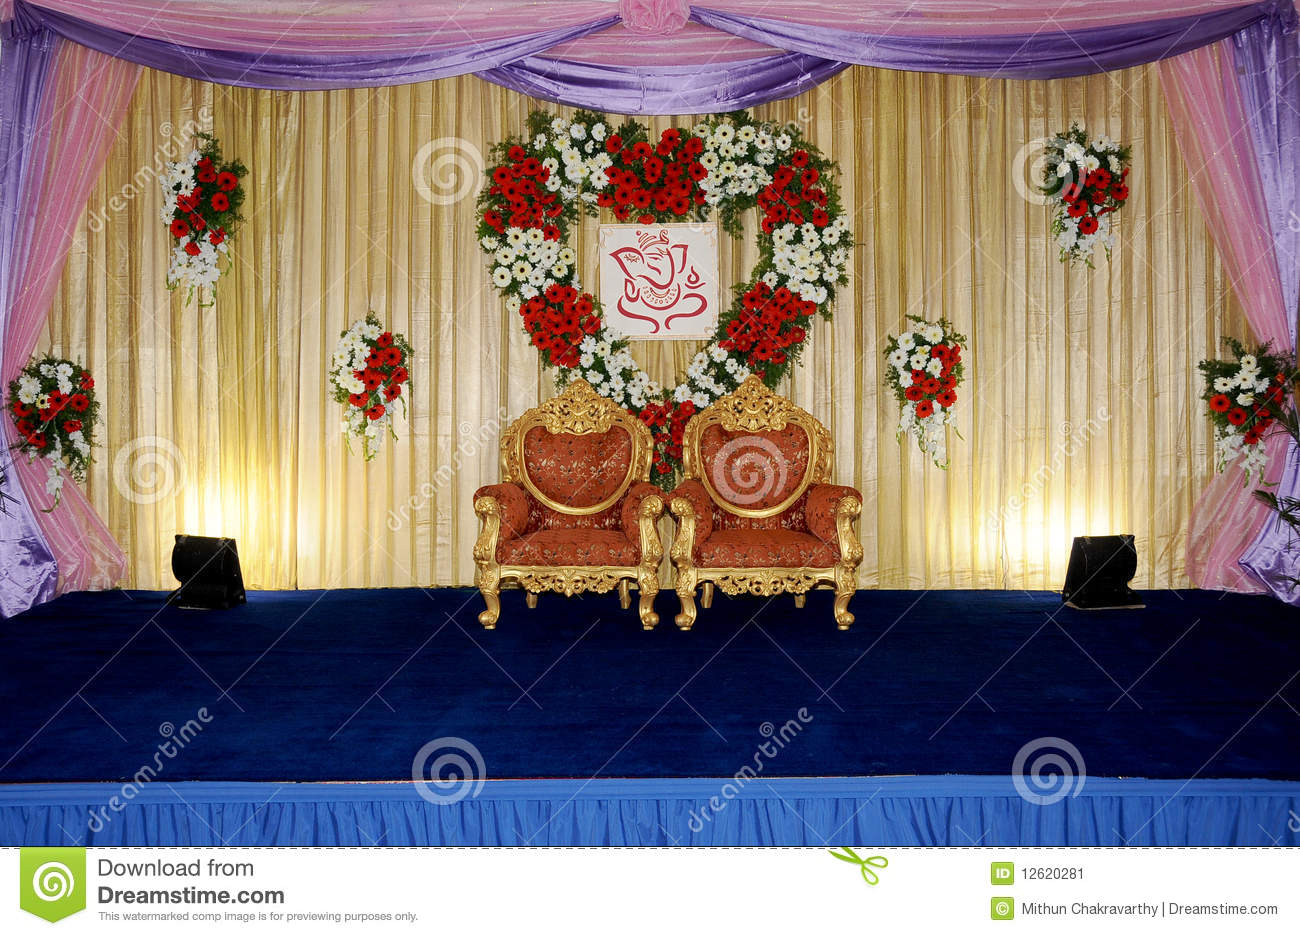 wedding stage stock image image of floral designing 12620281. Black Bedroom Furniture Sets. Home Design Ideas